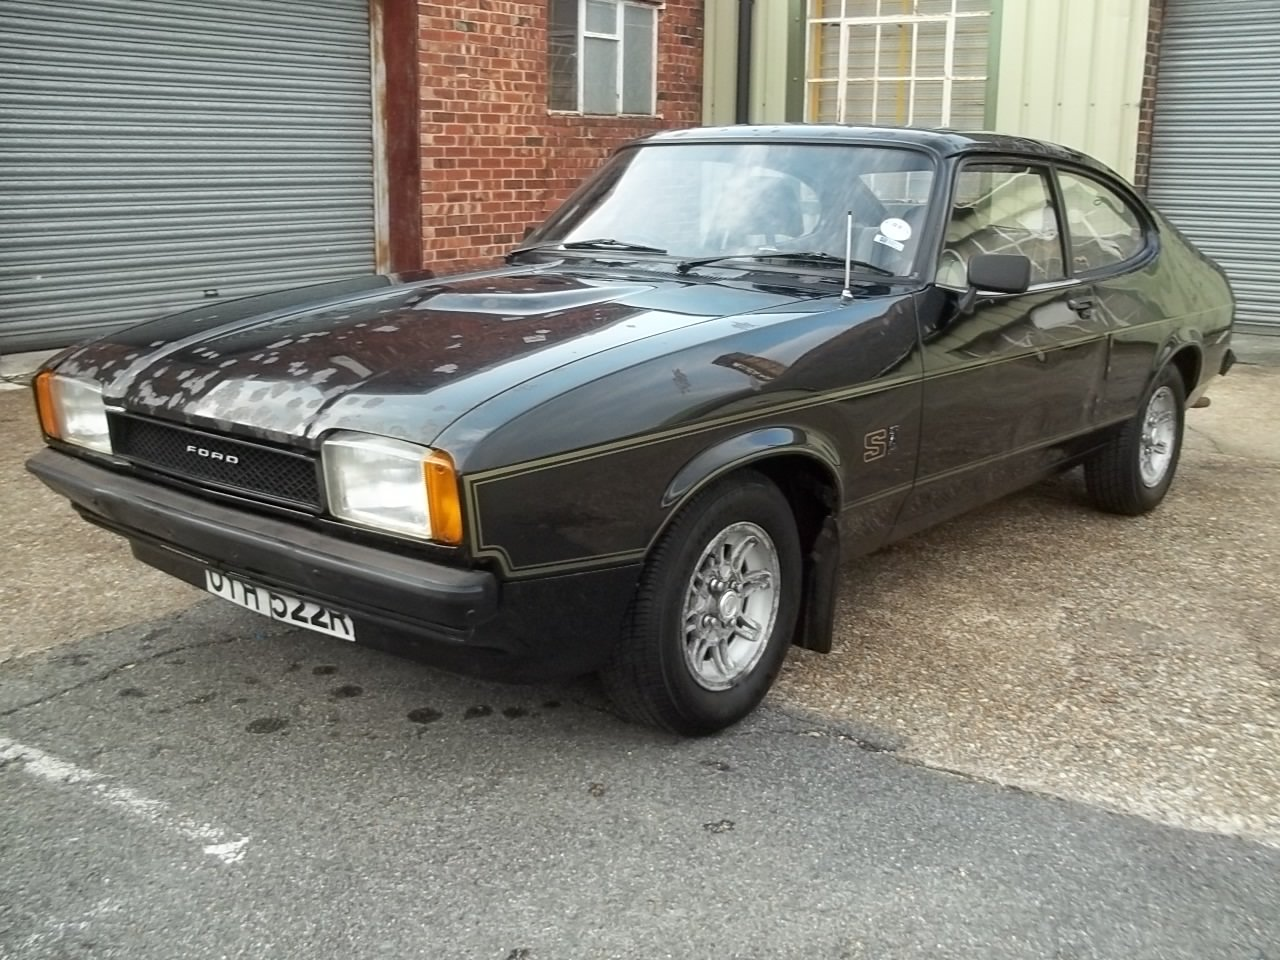 1977 Ford Capri 2.0S 1 owner from new SOLD (picture 1 of 6)